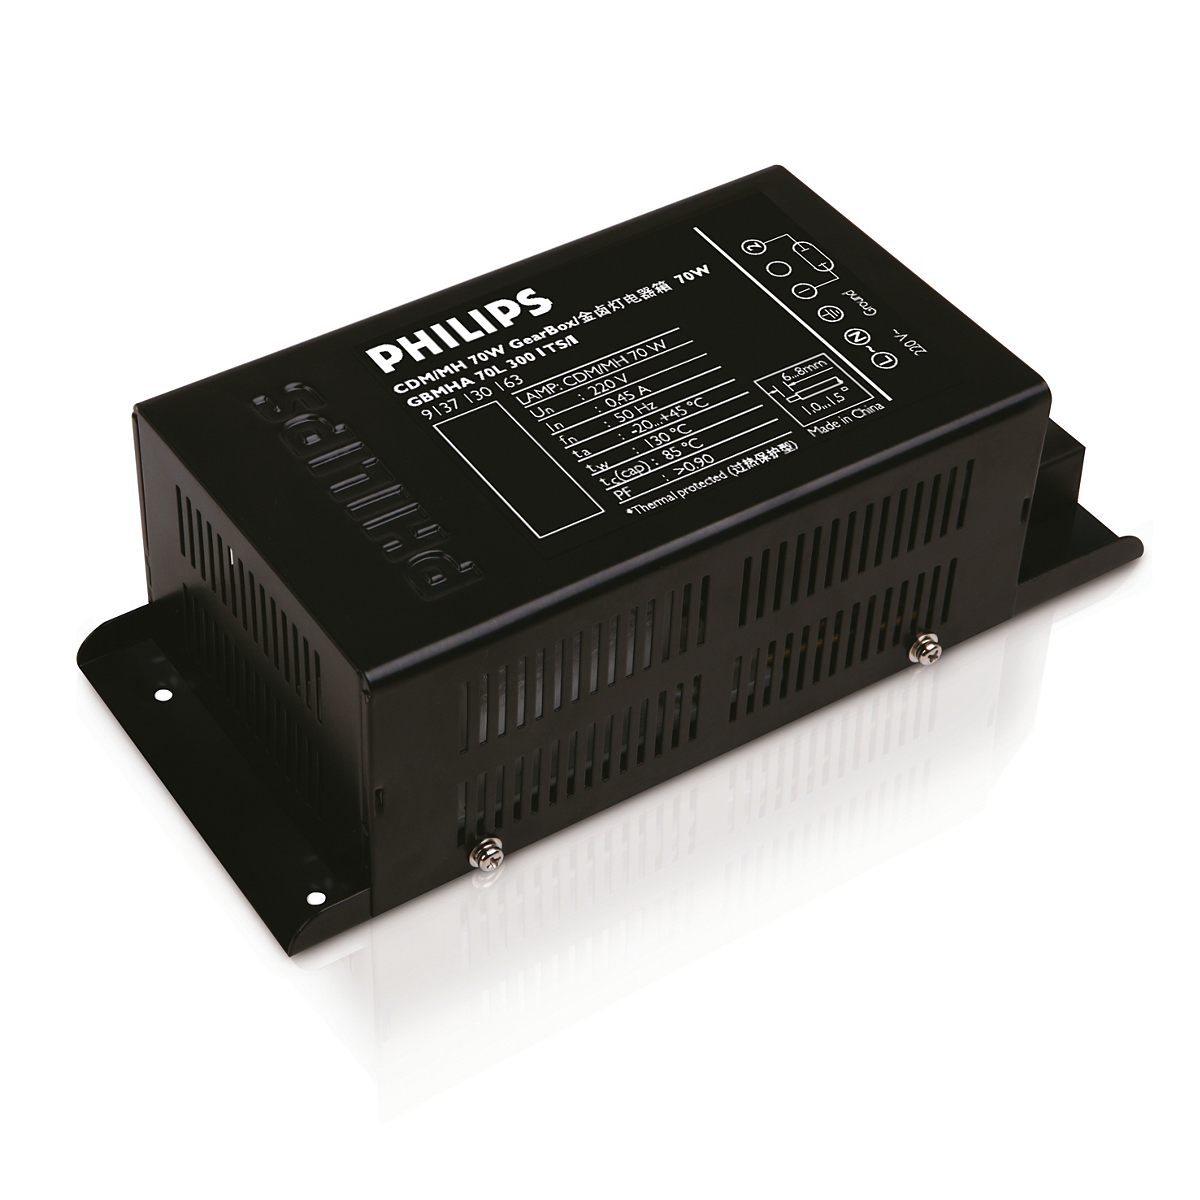 HID-Basic Gearbox system for MHN/CDM lamps